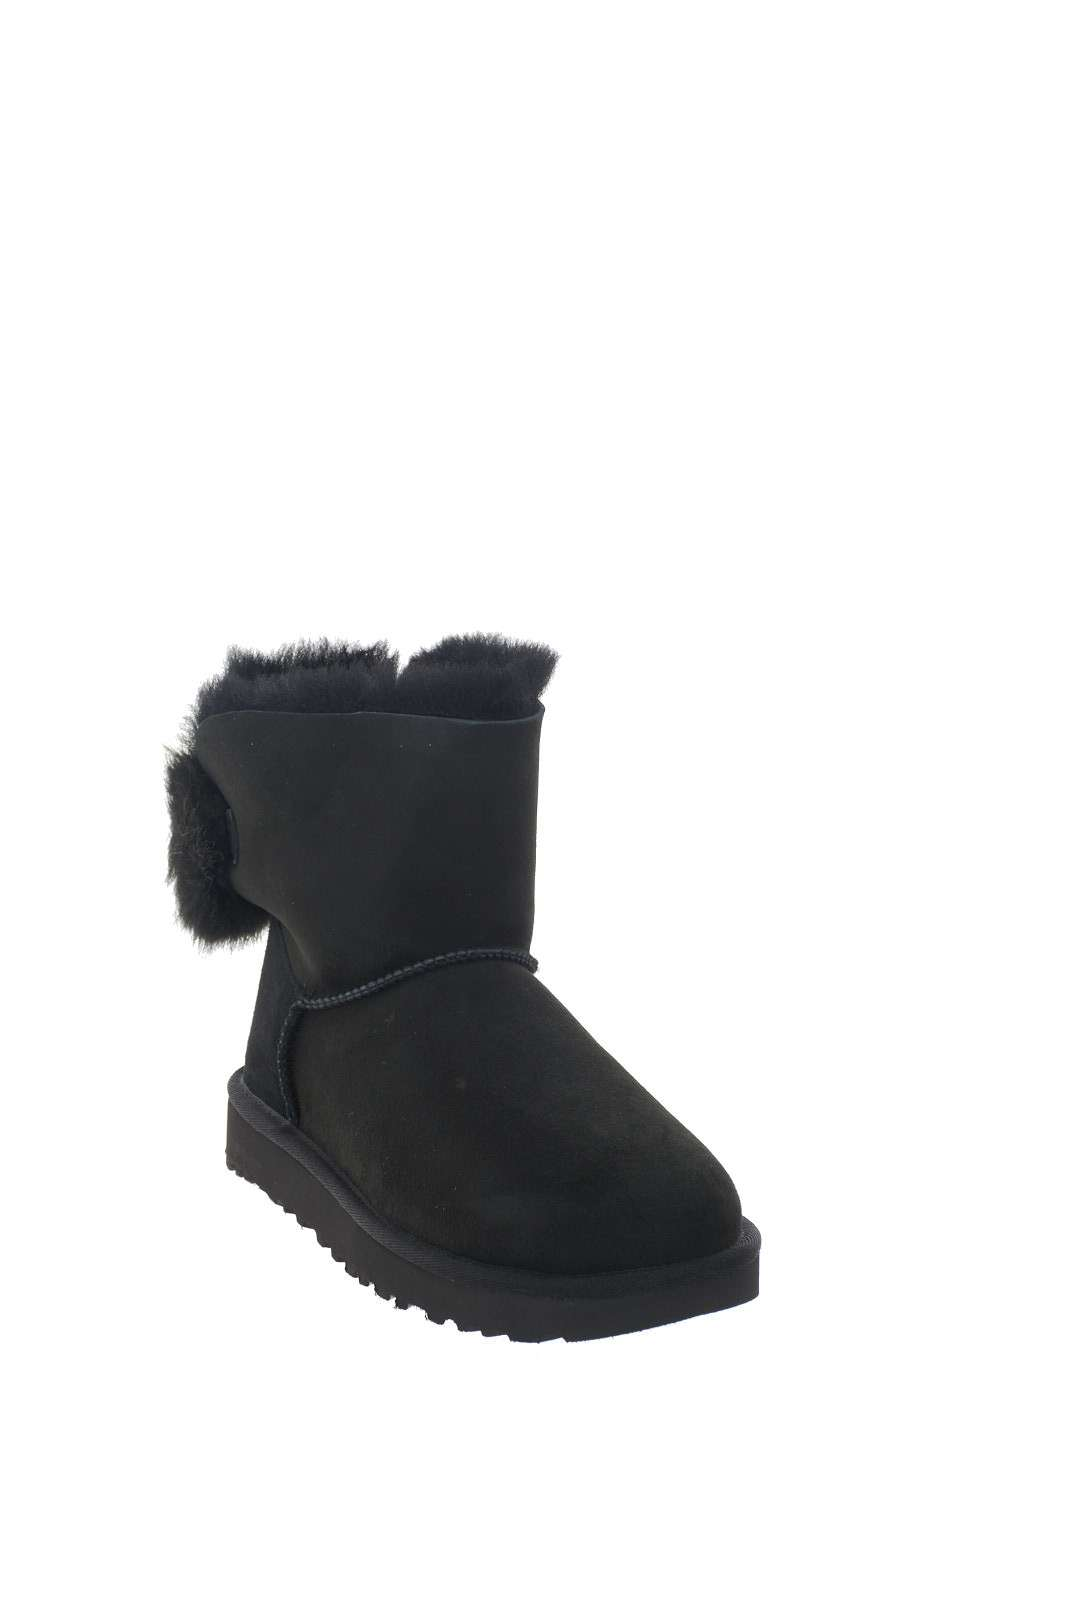 https://www.parmax.com/media/catalog/product/a/i/AI-outlet_parmax-stivaletti-donna-Ugg-1103776-B_1.jpg